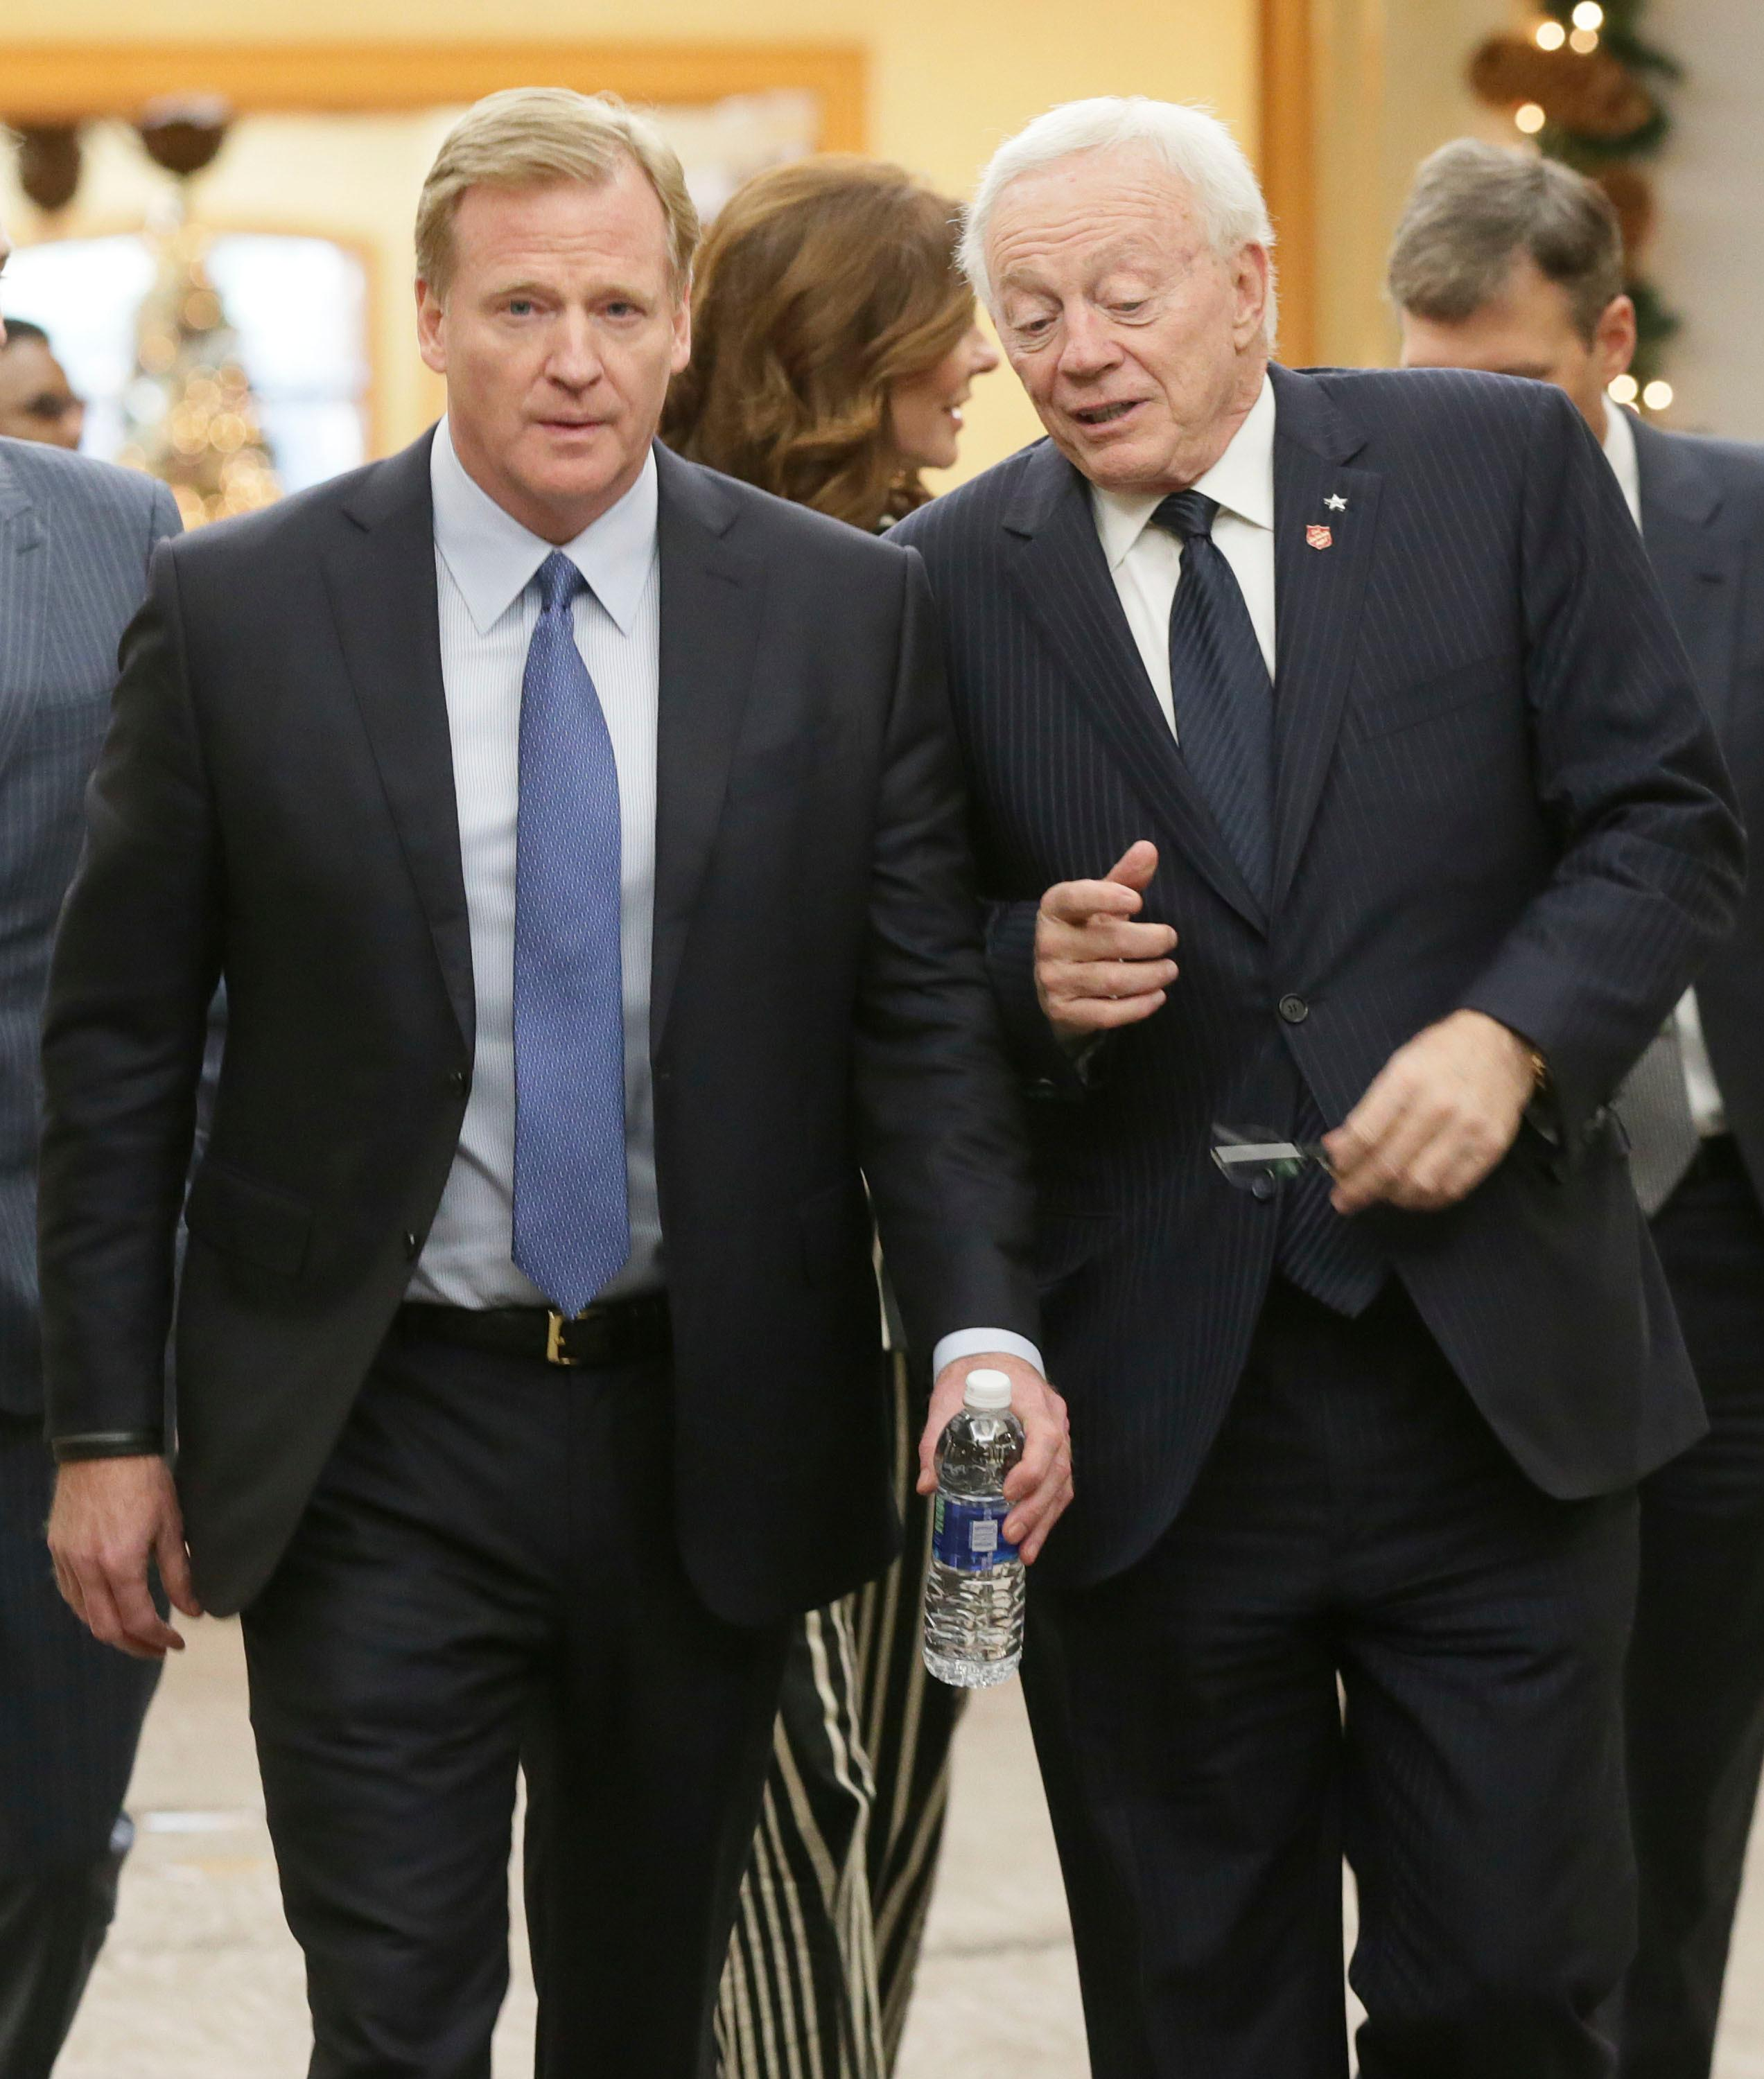 NLF Commissioner Roger Goodell, left, walks with Dallas Cowboys owner Jerry Jones during the NFL owners winter meeting in Irving, Texas, Wednesday, Dec. 13, 2017. (AP Photo/LM Otero)